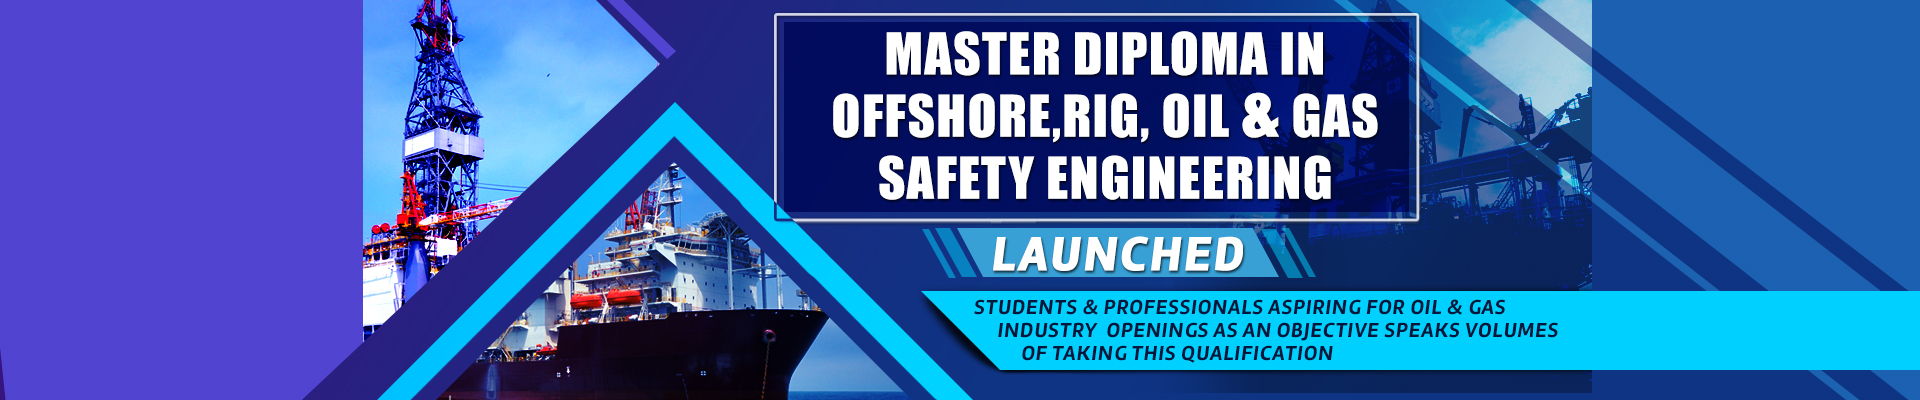 MASTER-DIPLOMA-IN-OFFSHORE-RIG-OIL_Banner_coin_new